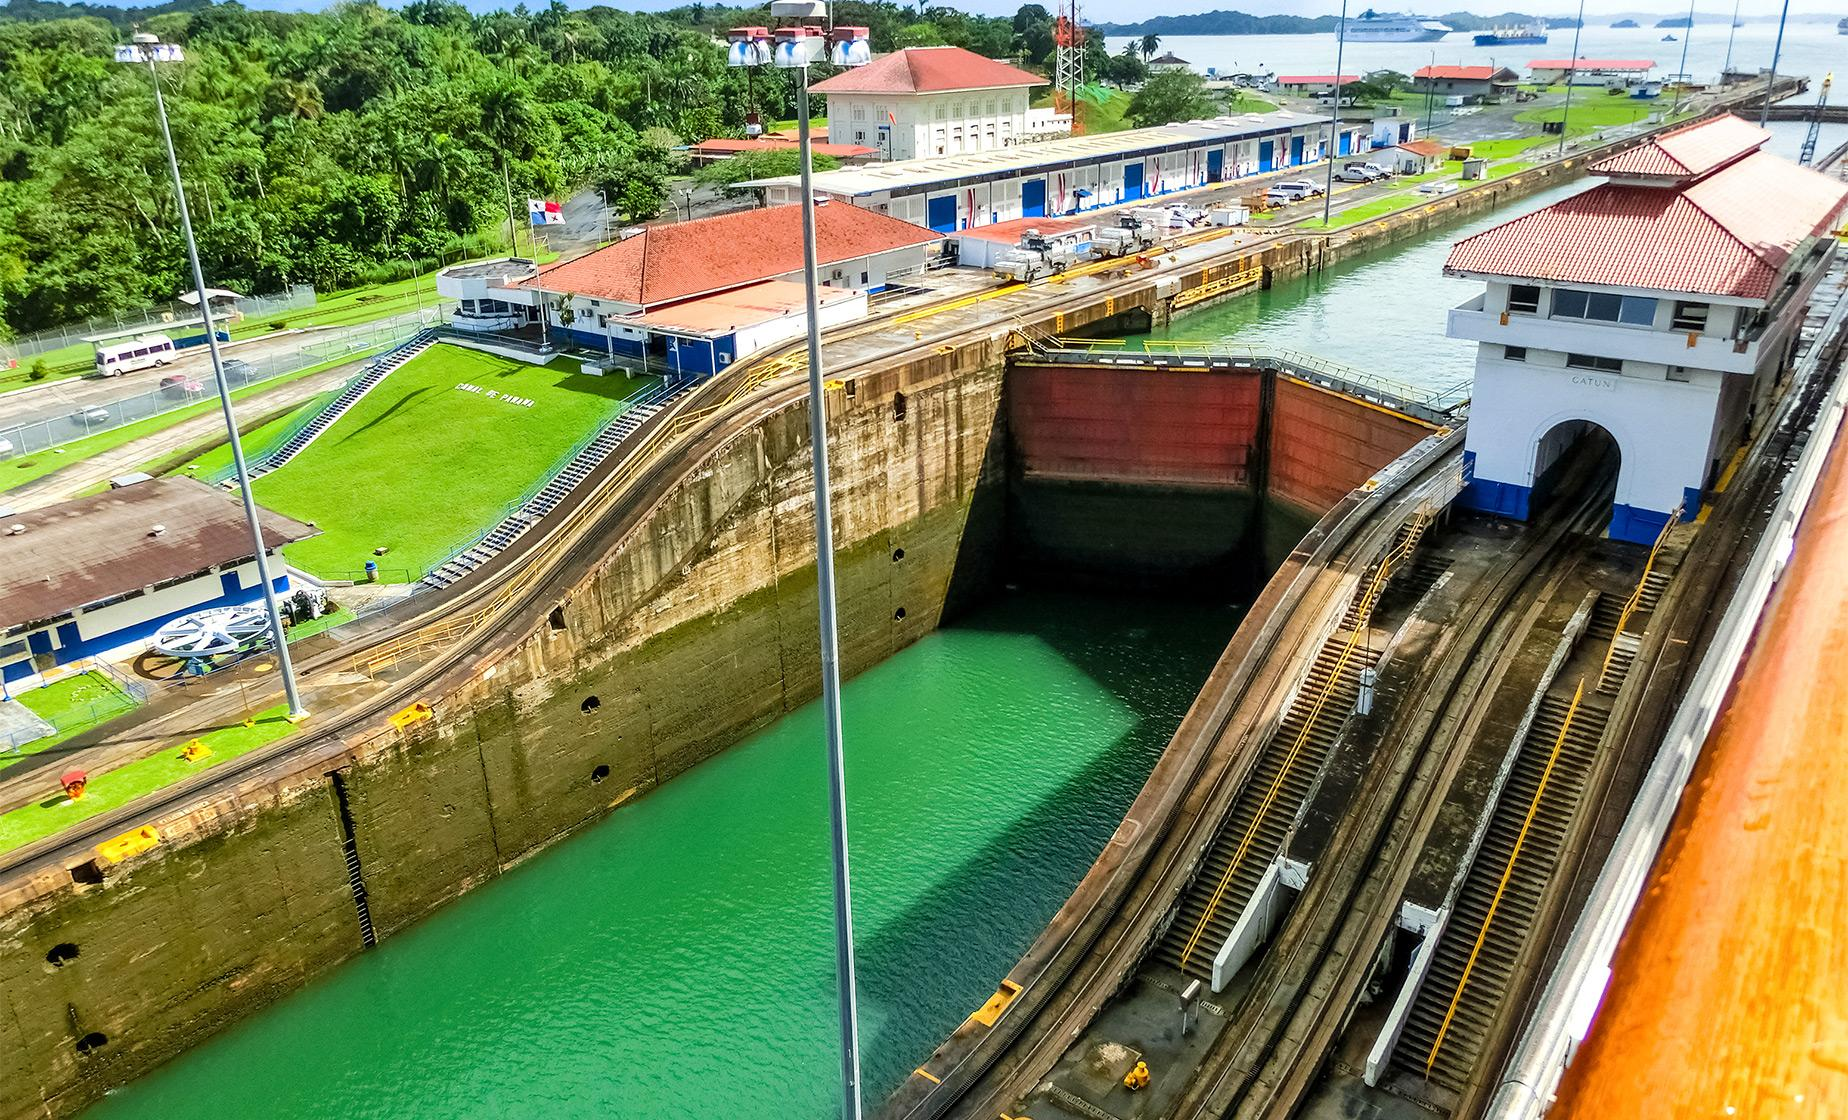 Aerial Tram and Miraflores Locks